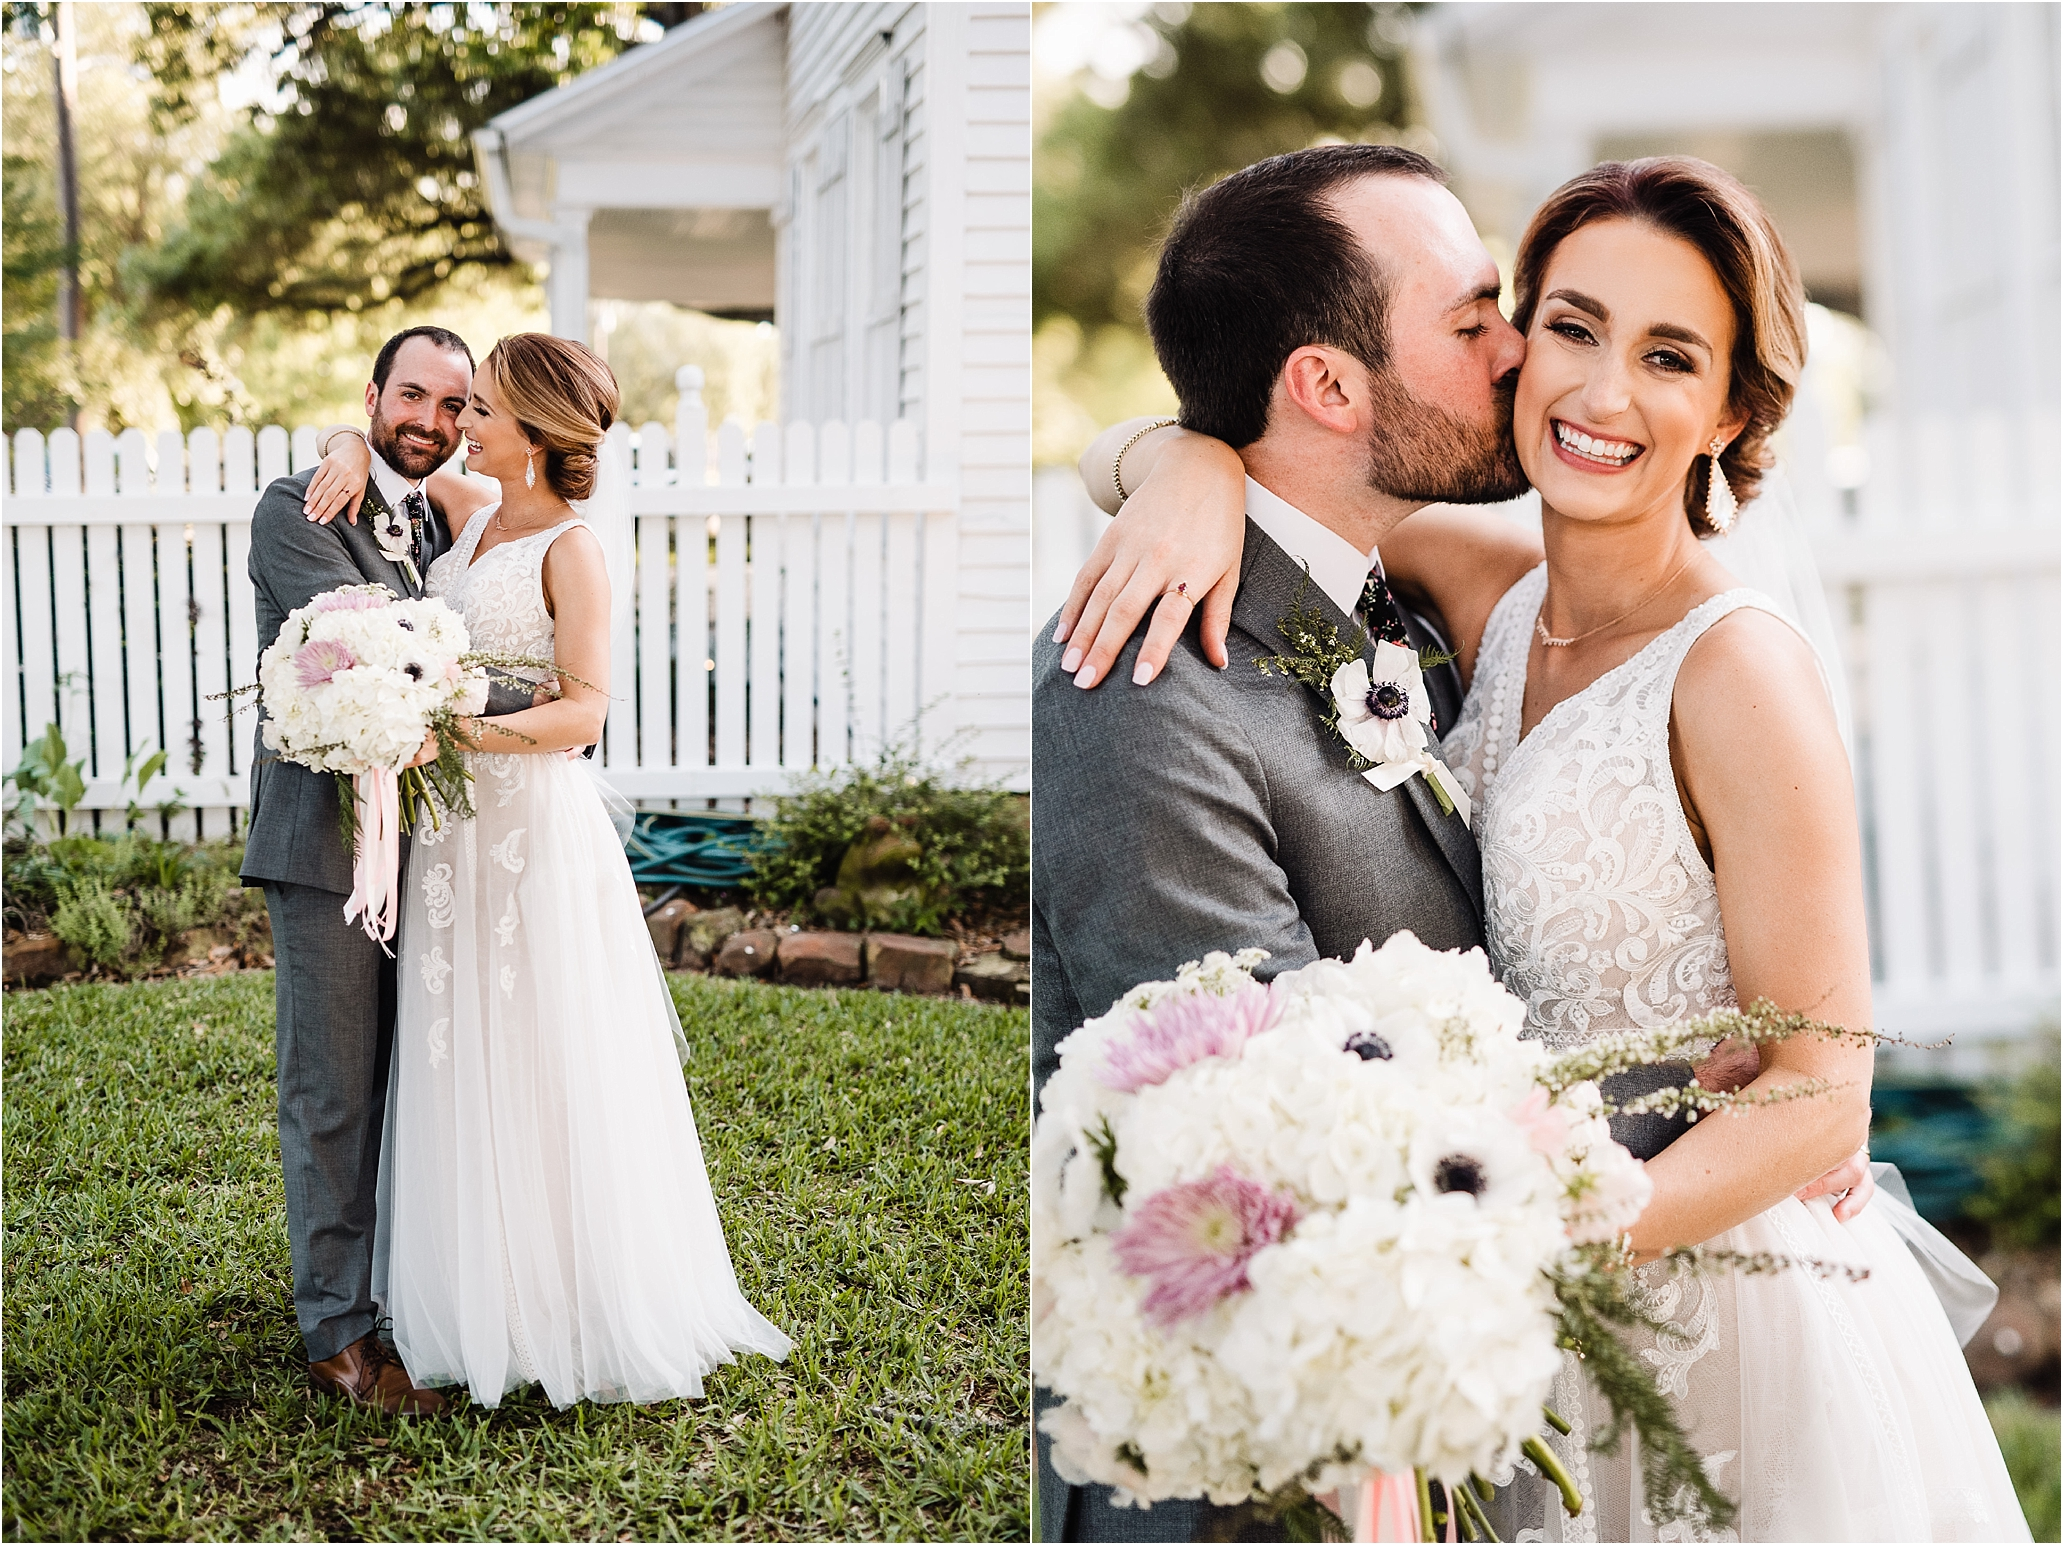 PattisonHouse_TexasWeddingPhotographer_CarlyCrockett&MattBrownWedding_0066.jpg